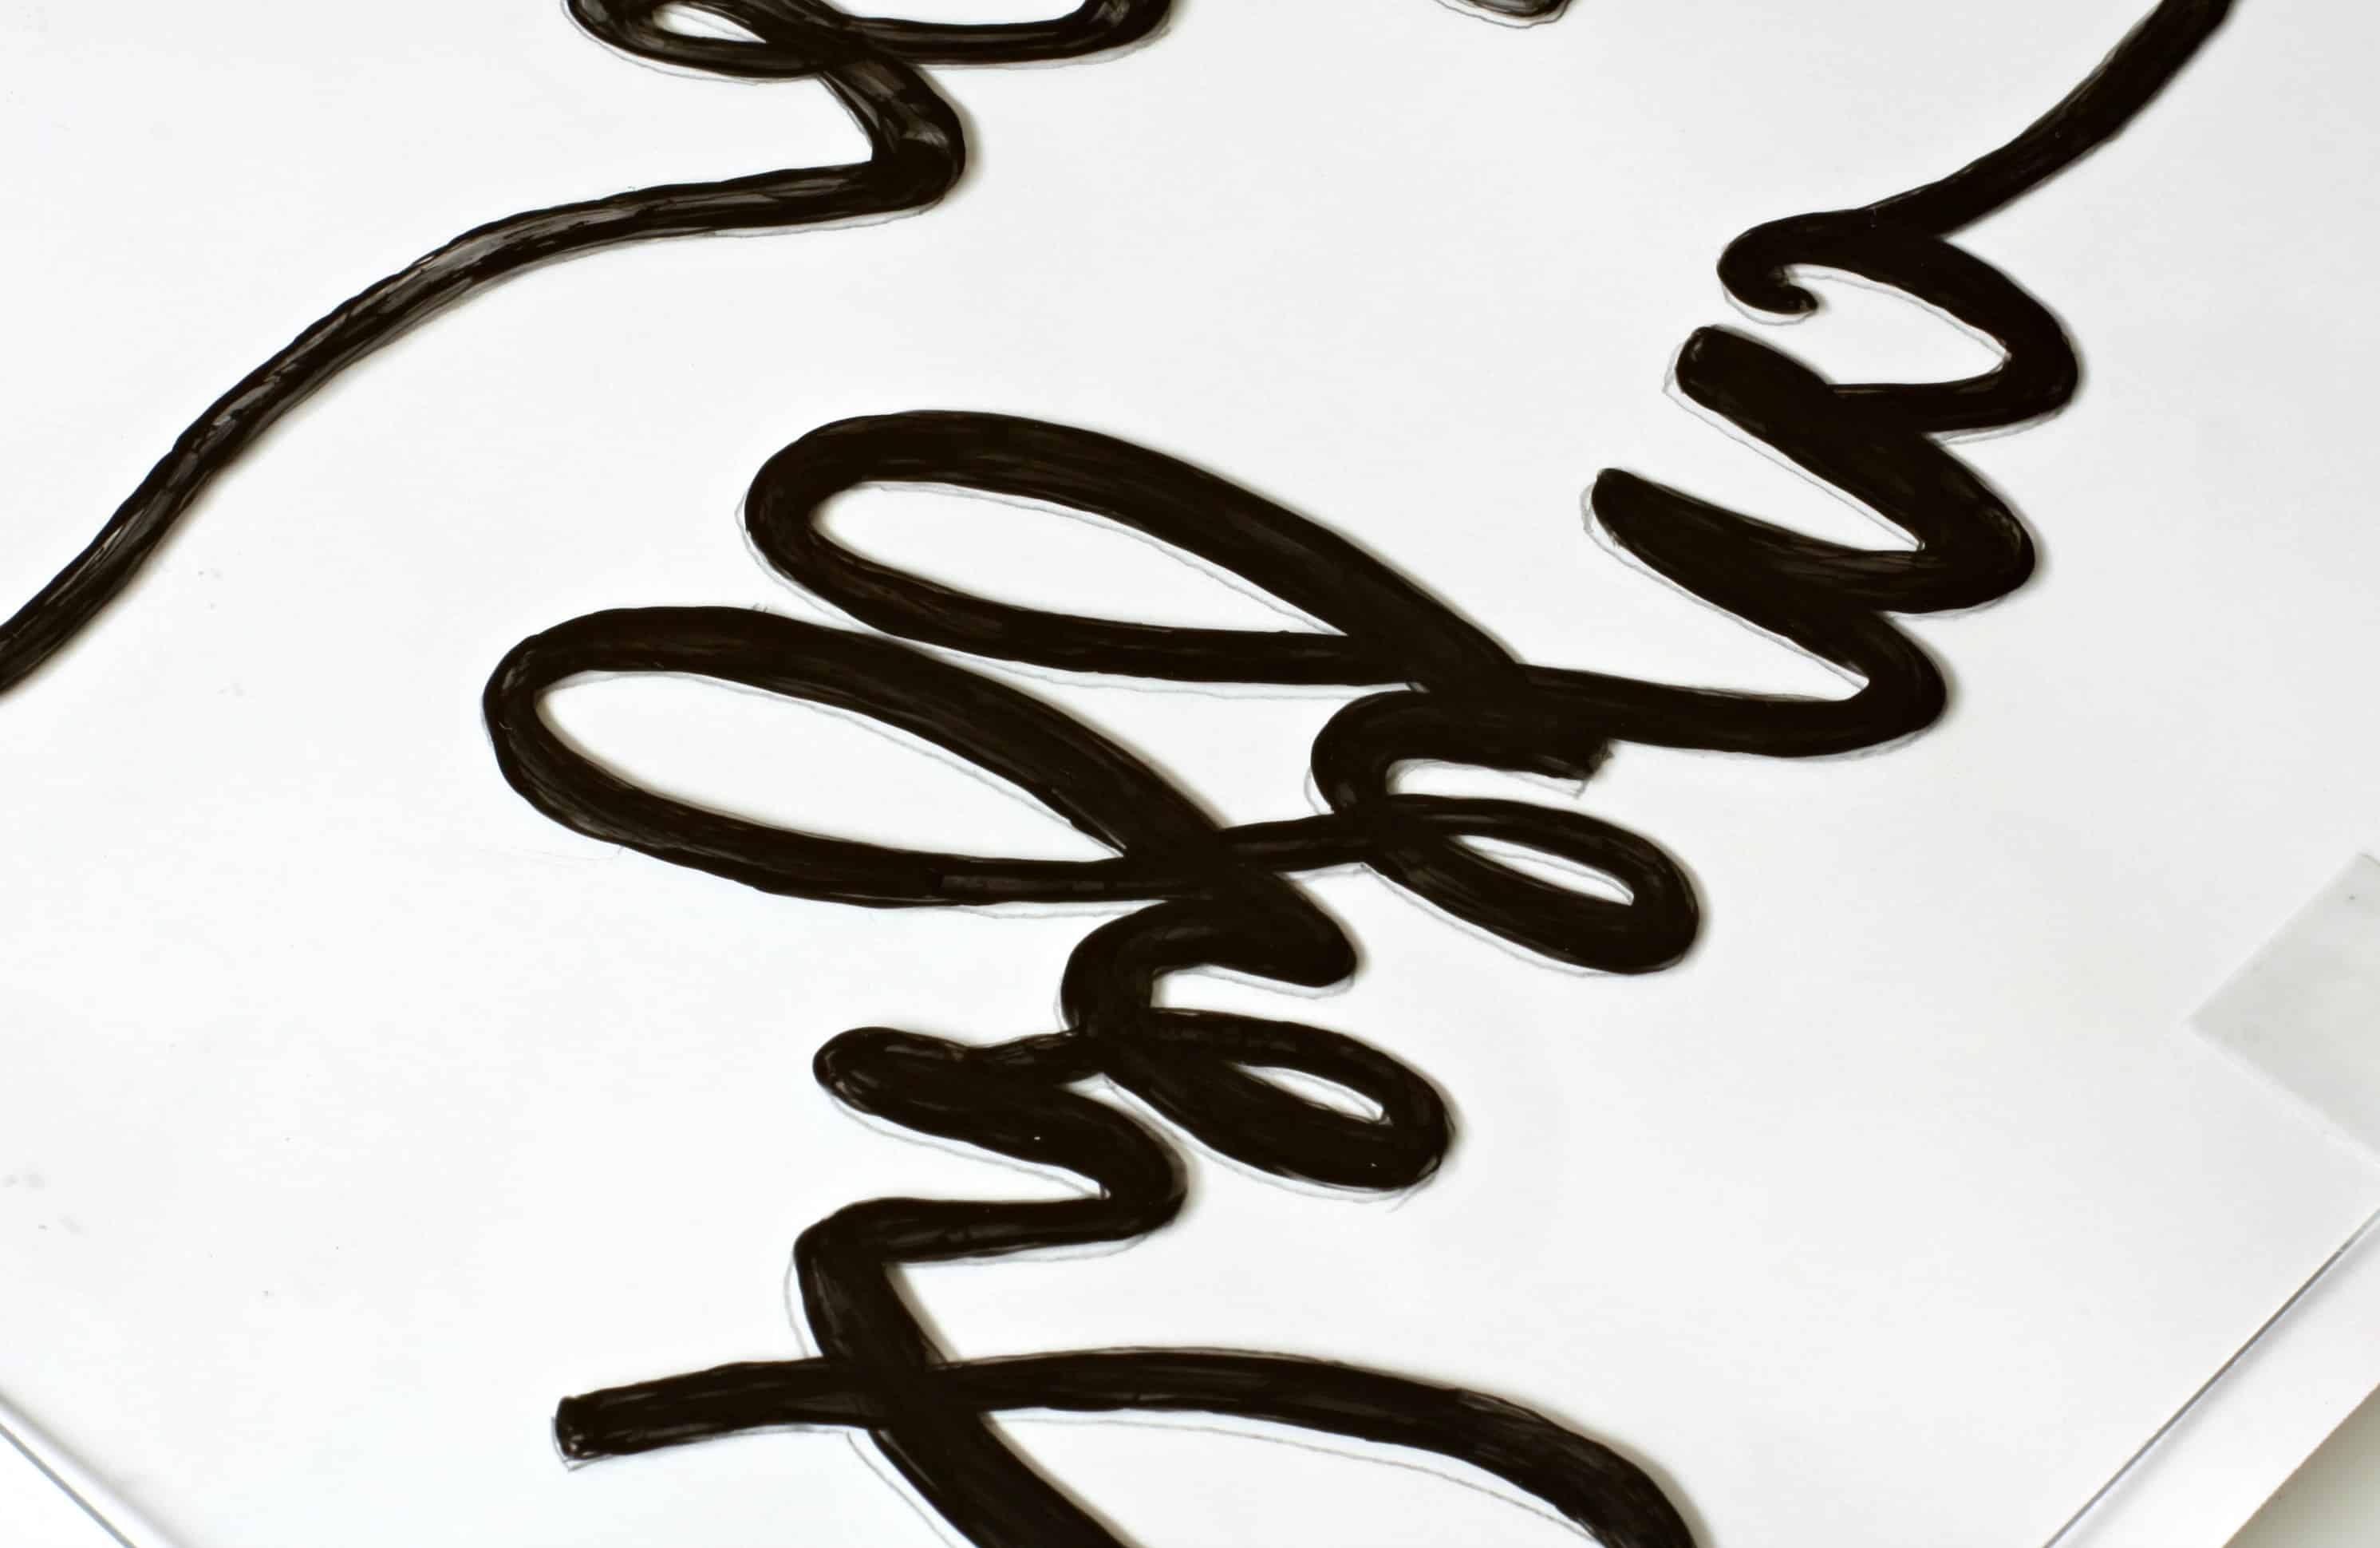 paper and glass sitting on table with lettering painted on the paper